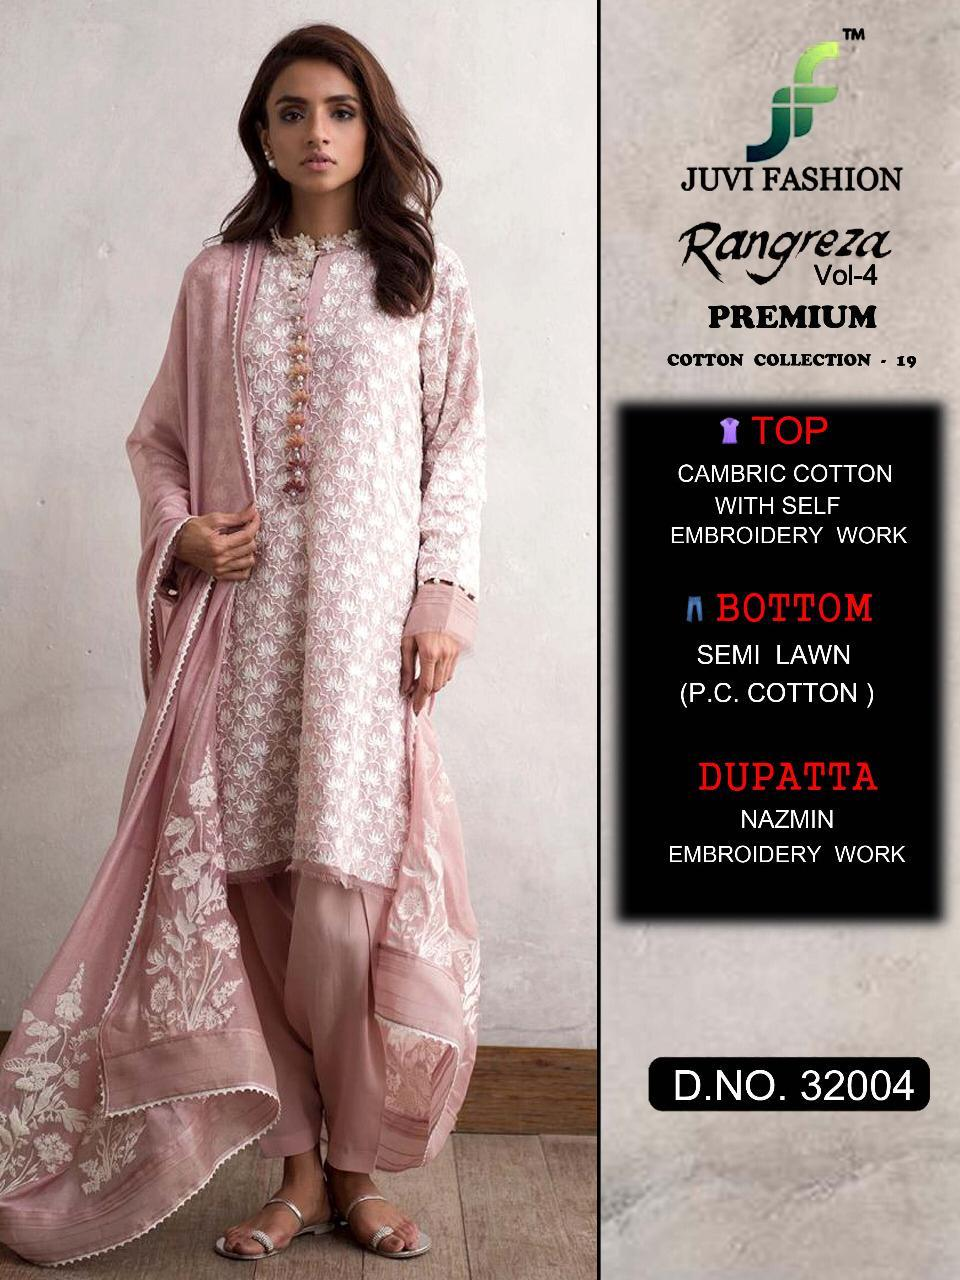 7fcee184d1 DOWNLOAD ZIP · DOWNLOAD PDF RANGREZA VOL 4 BY JUVI FASHION COTTON PAKISTANI  SUITS COLLECTION ...